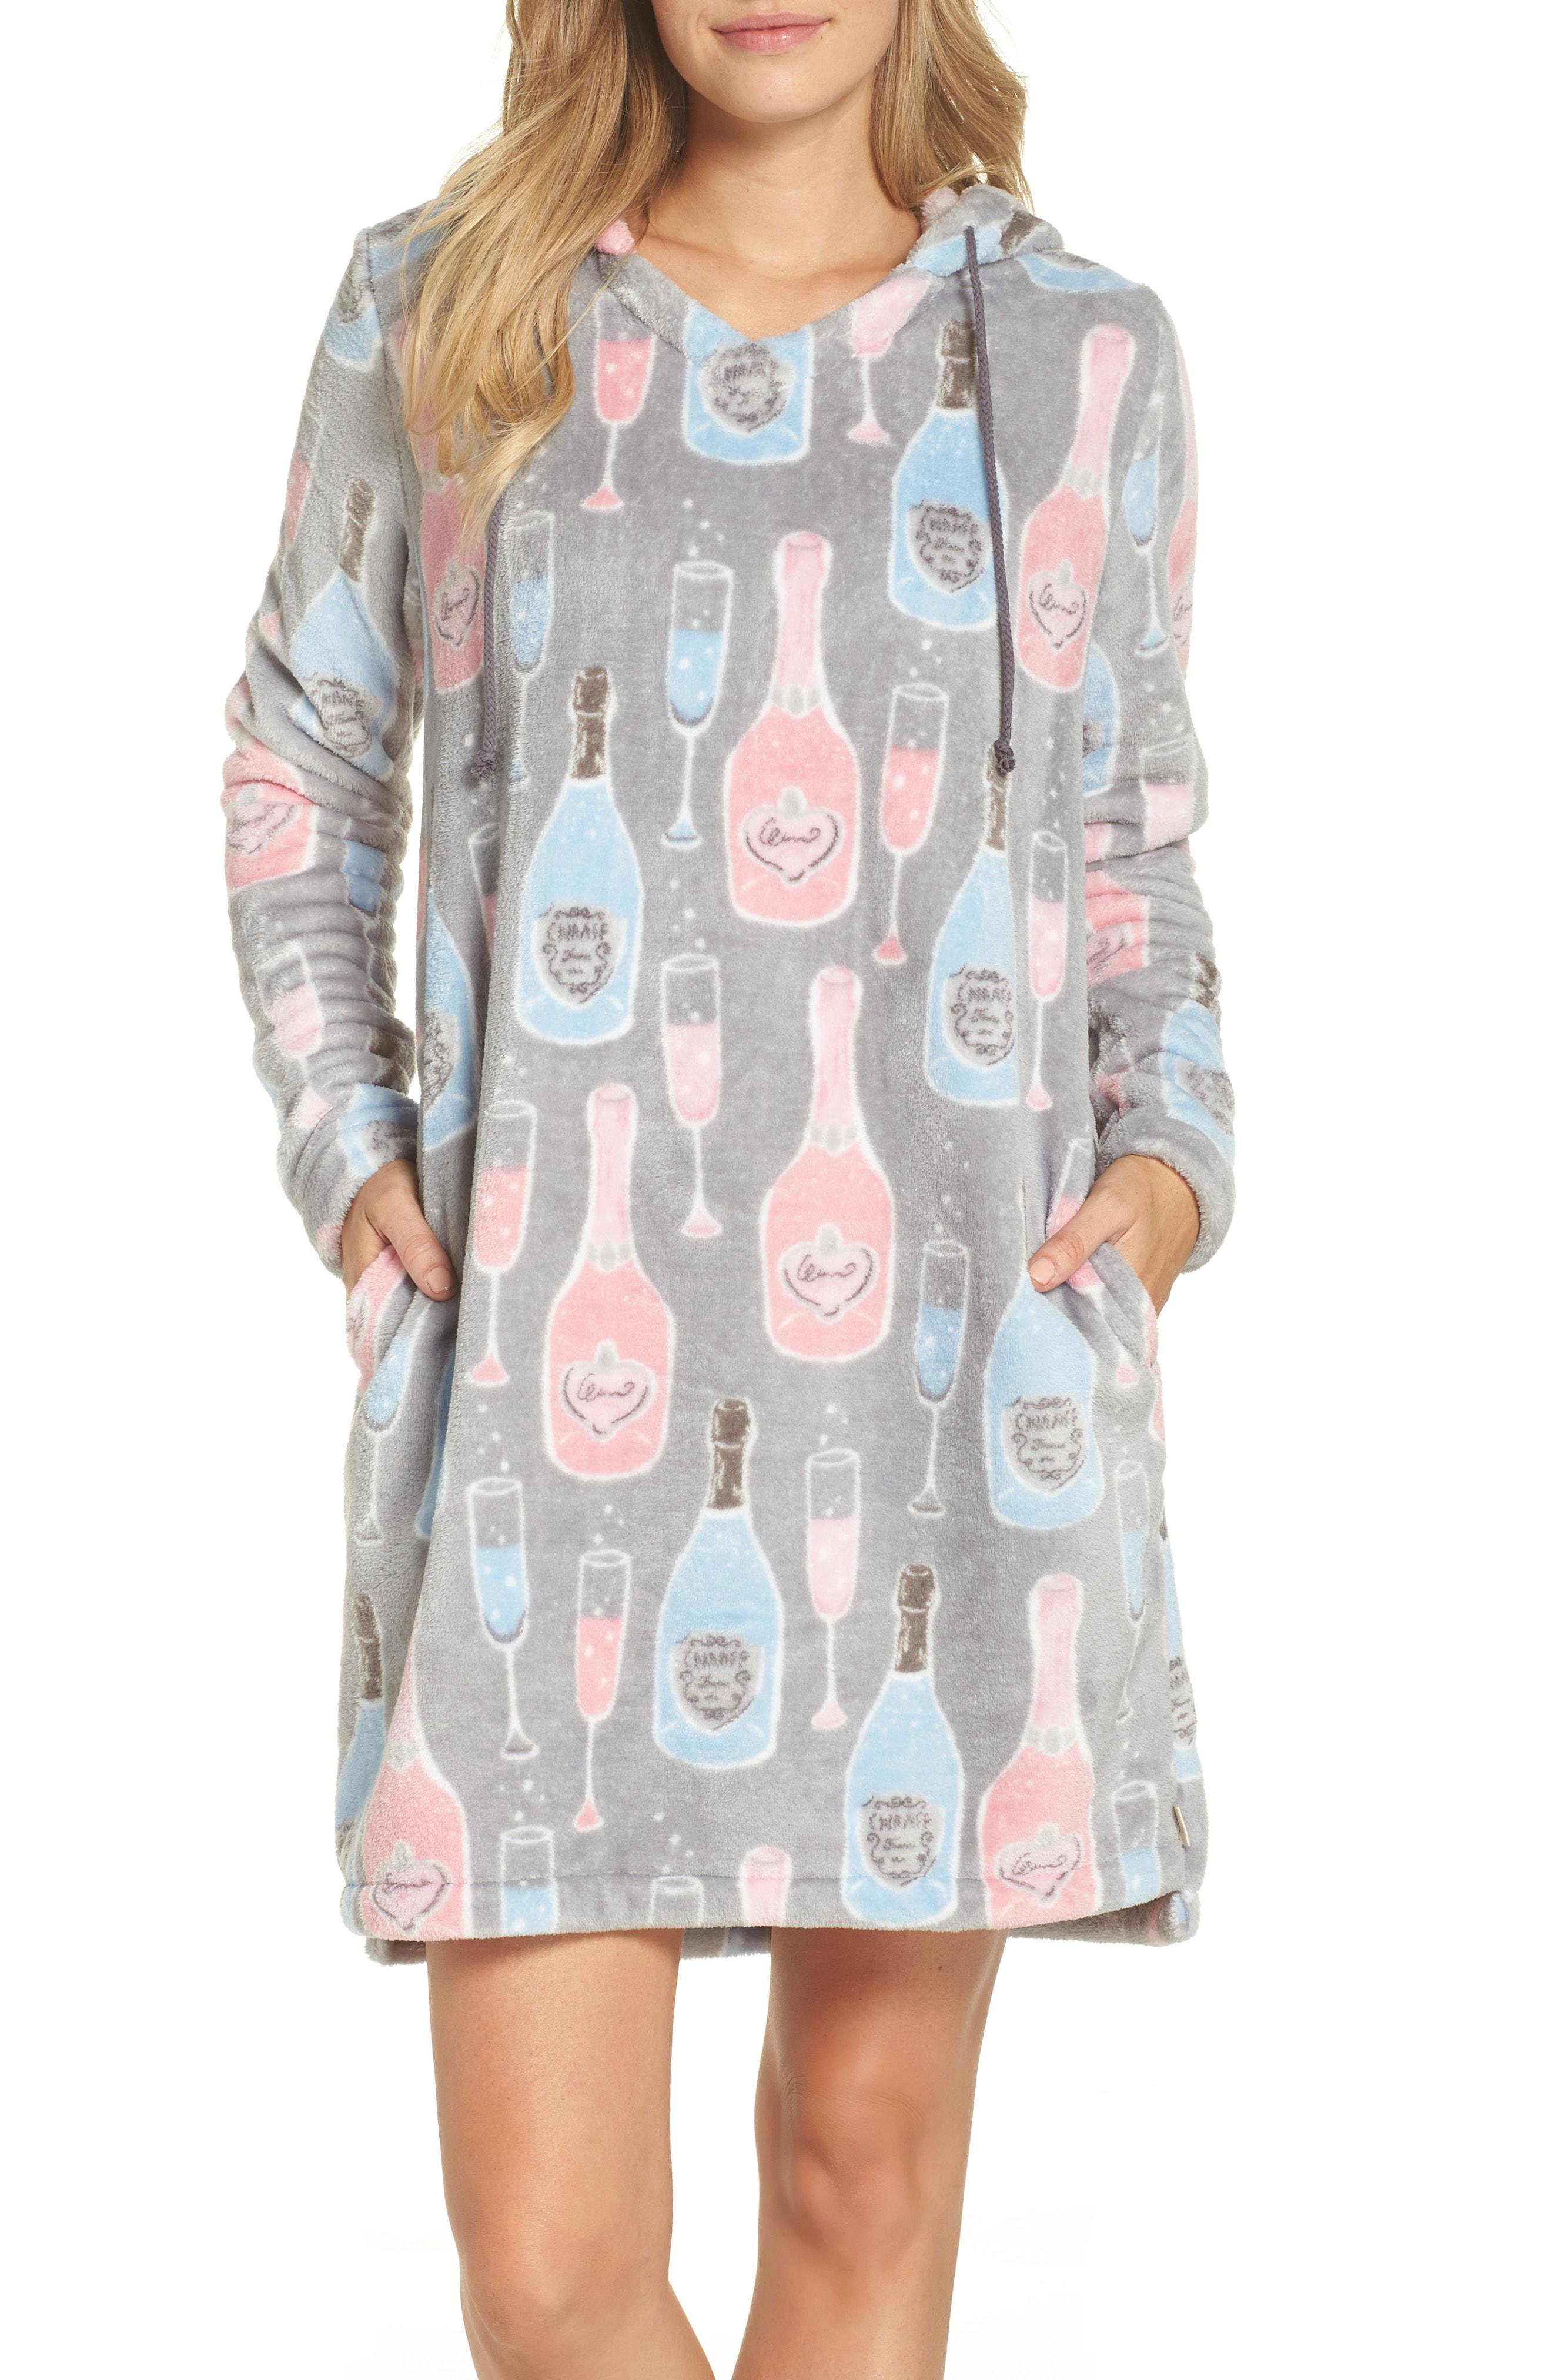 149280d3bfe Lyst - Munki Munki Plush Hooded Nightgown in Gray